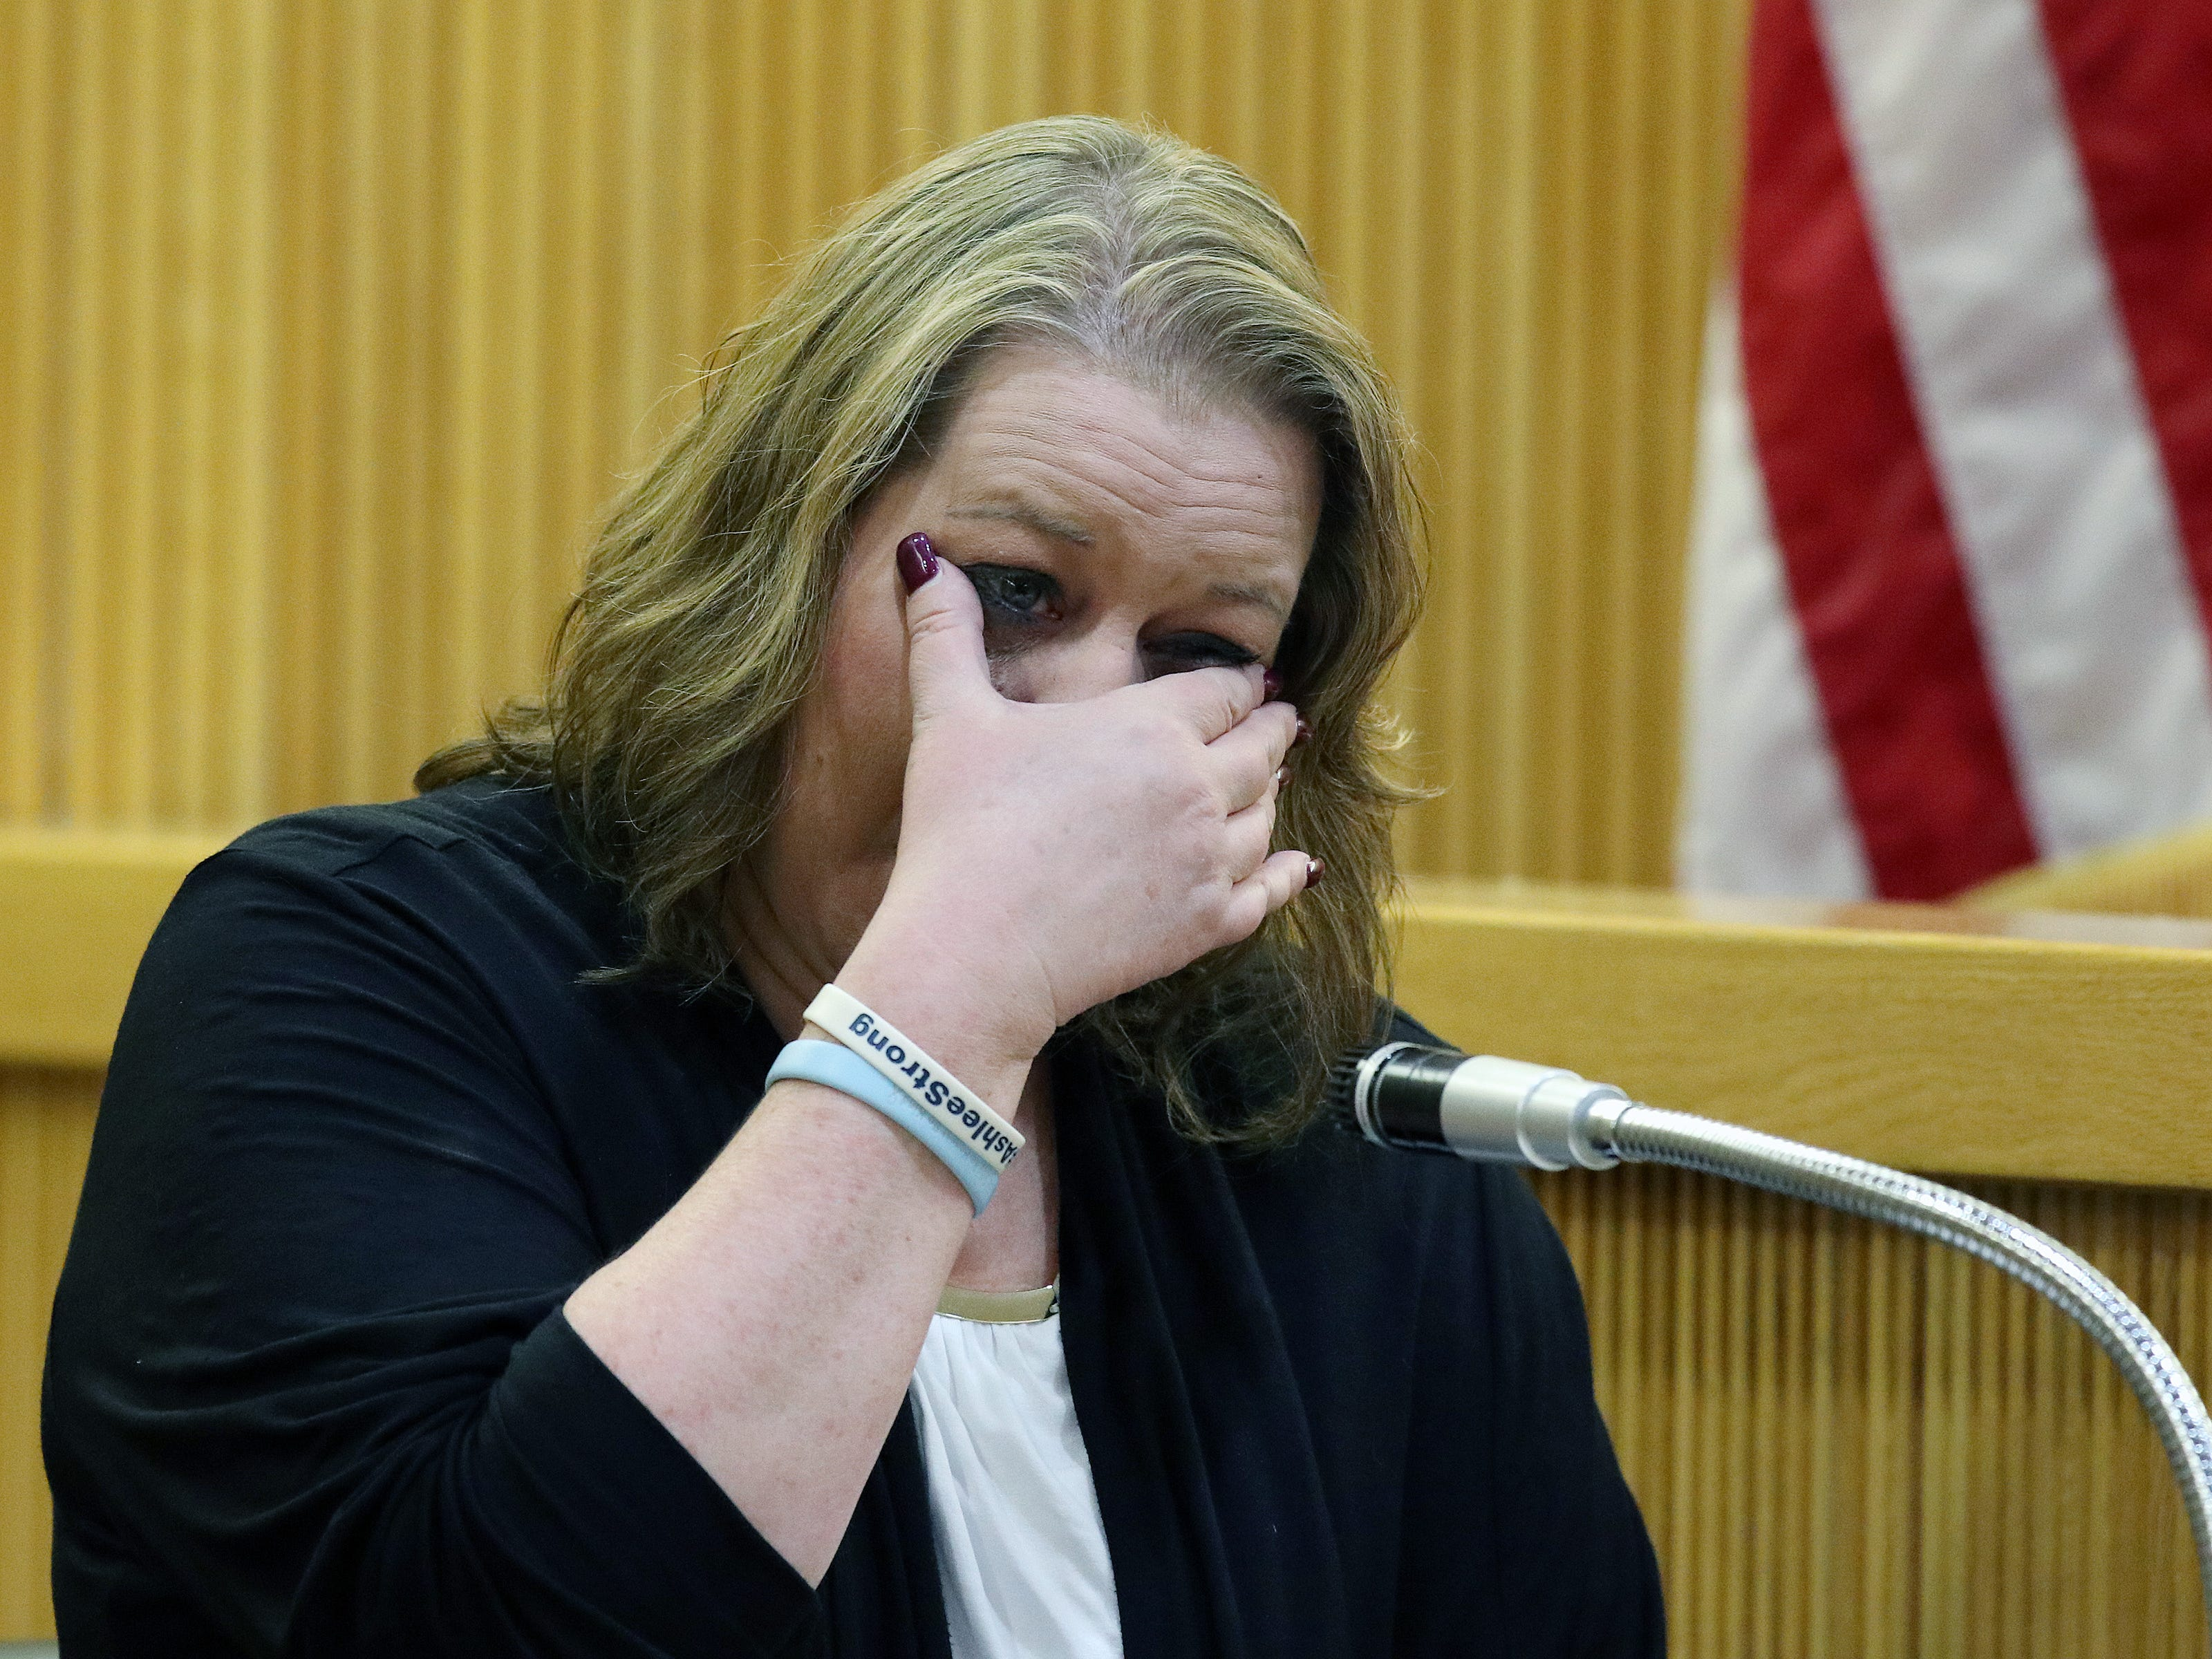 Linda Capobianco, friend of the Stern family and employee at the Kearny Bank in Bradley Beach, tears up as talks about seeing Sarah Stern at the bank on December 2, 2016 as she testifies during the trial of Liam McAtasney, who is charged with the murder of former high school classmate, Sarah Stern, before Superior Court Judge Richard W. English at the Monmouth County Courthouse in Freehold, NJ Thursday January 24, 2019.